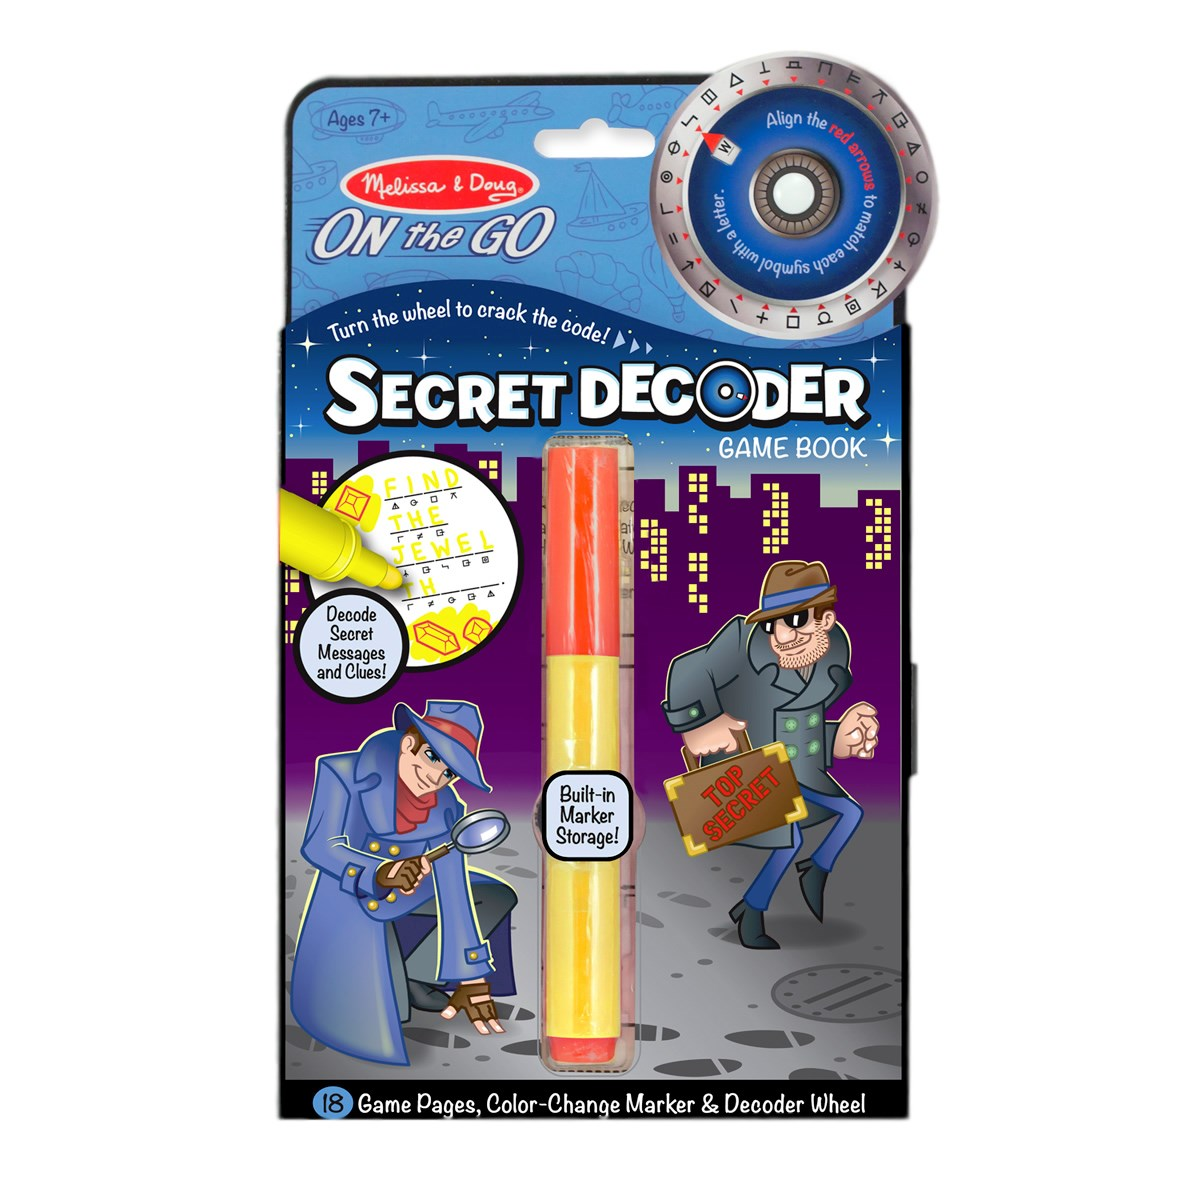 Melissa & Doug Secret Decoder Game Book - ON the GO Travel Activity Book